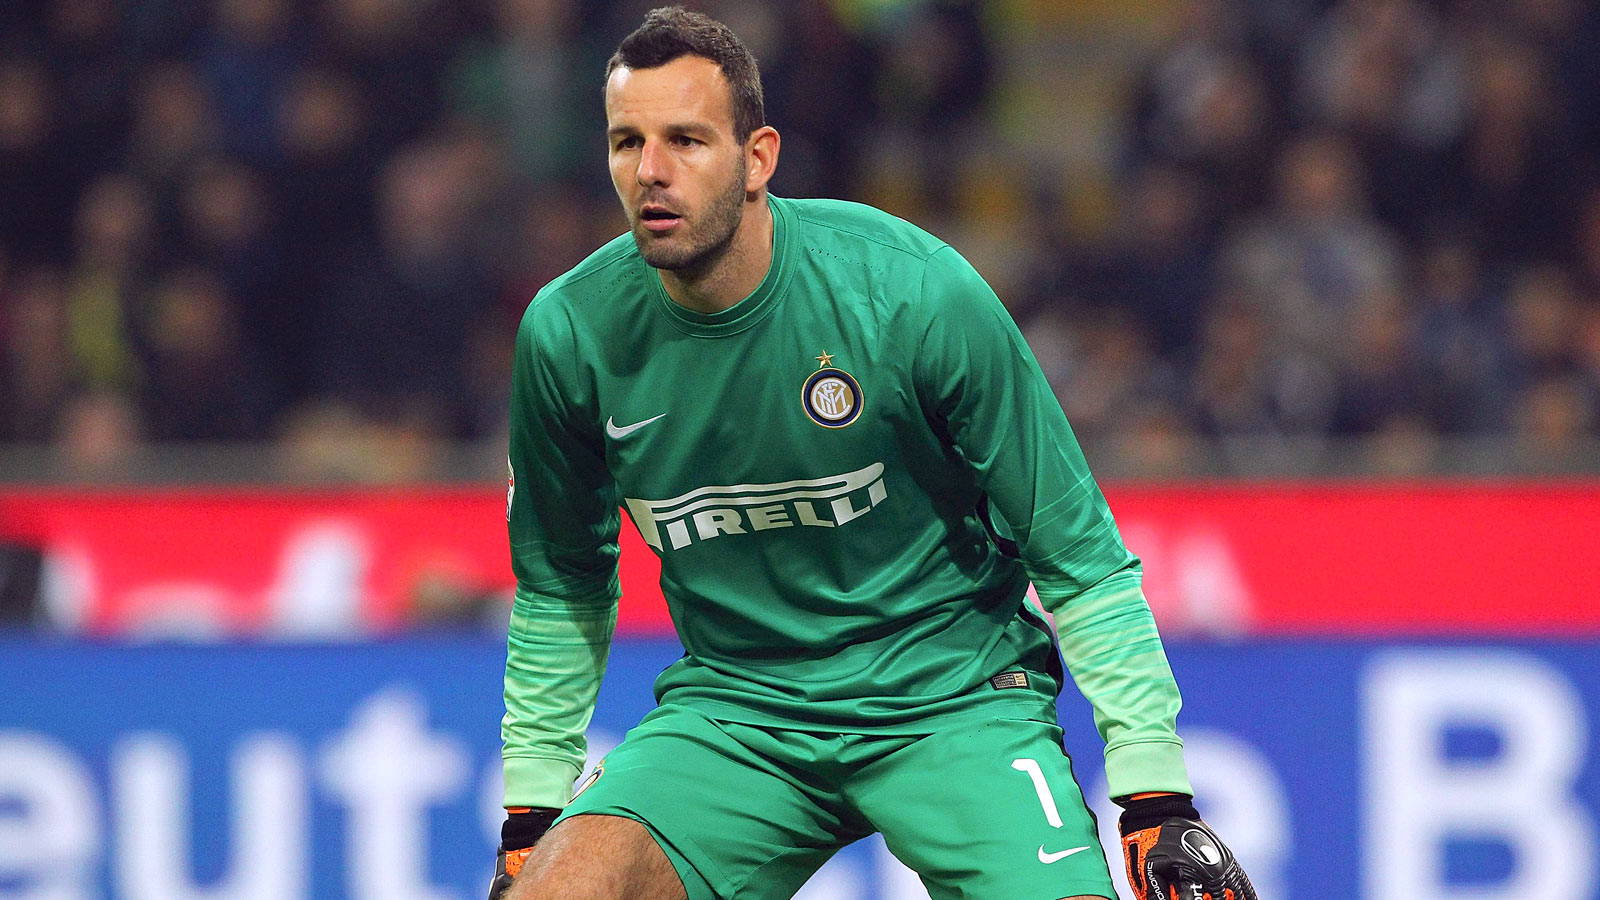 Handanovic pens new Inter Milan deal until 2019